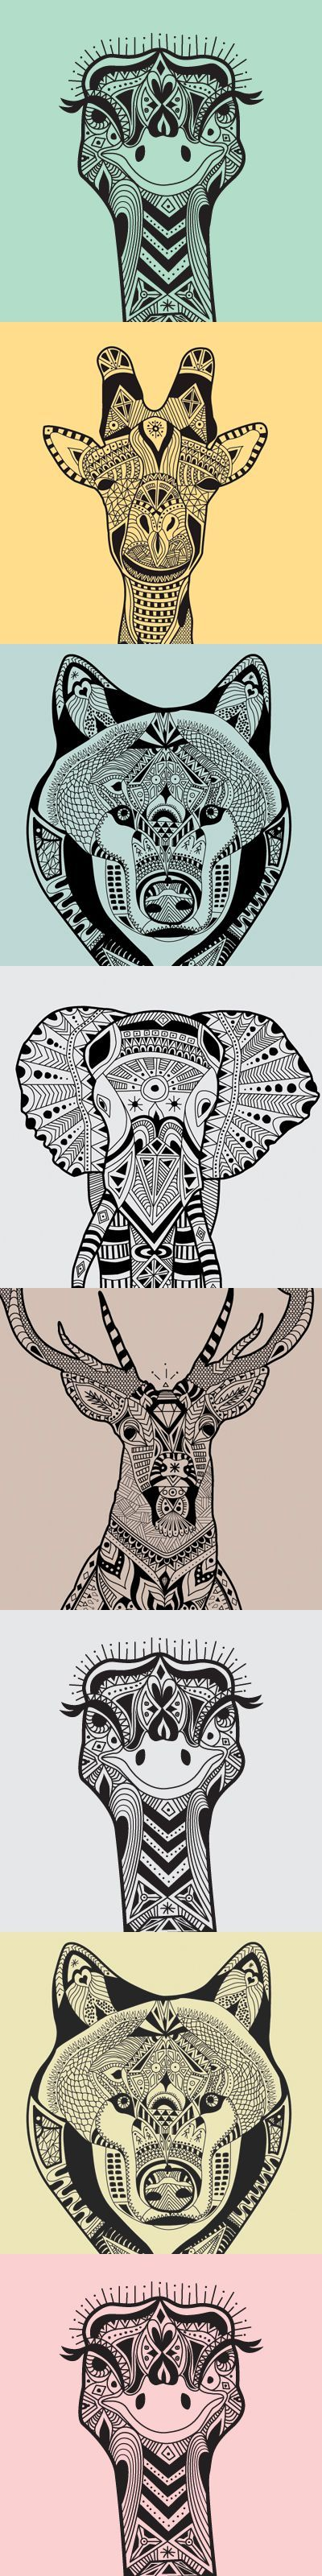 wild animals zentangle patterns - Zentangle - More doodle ideas - Zentangle - doodle - doodling - zentangle patterns. zentangle inspired - #zentangle #doodling #zentanglepatterns #Zentangle #Doodling #Zentanglepatterns